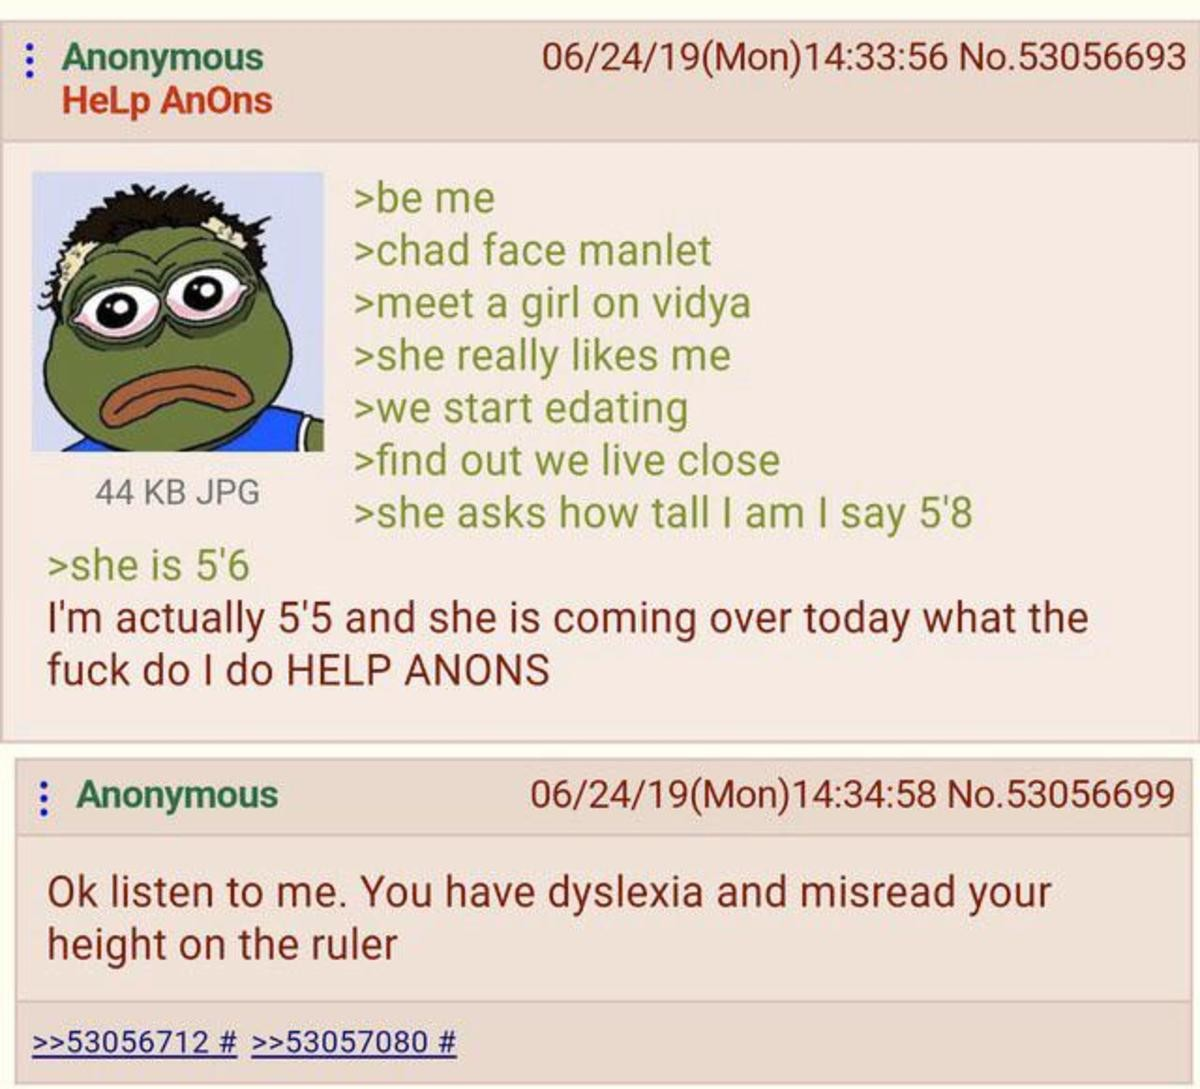 Anon is a Manlet. .. Just? Don't lie? Why are y'all so concerned about height? Morons. The only girls who care about height are just as dumb as the guys who fret about it.